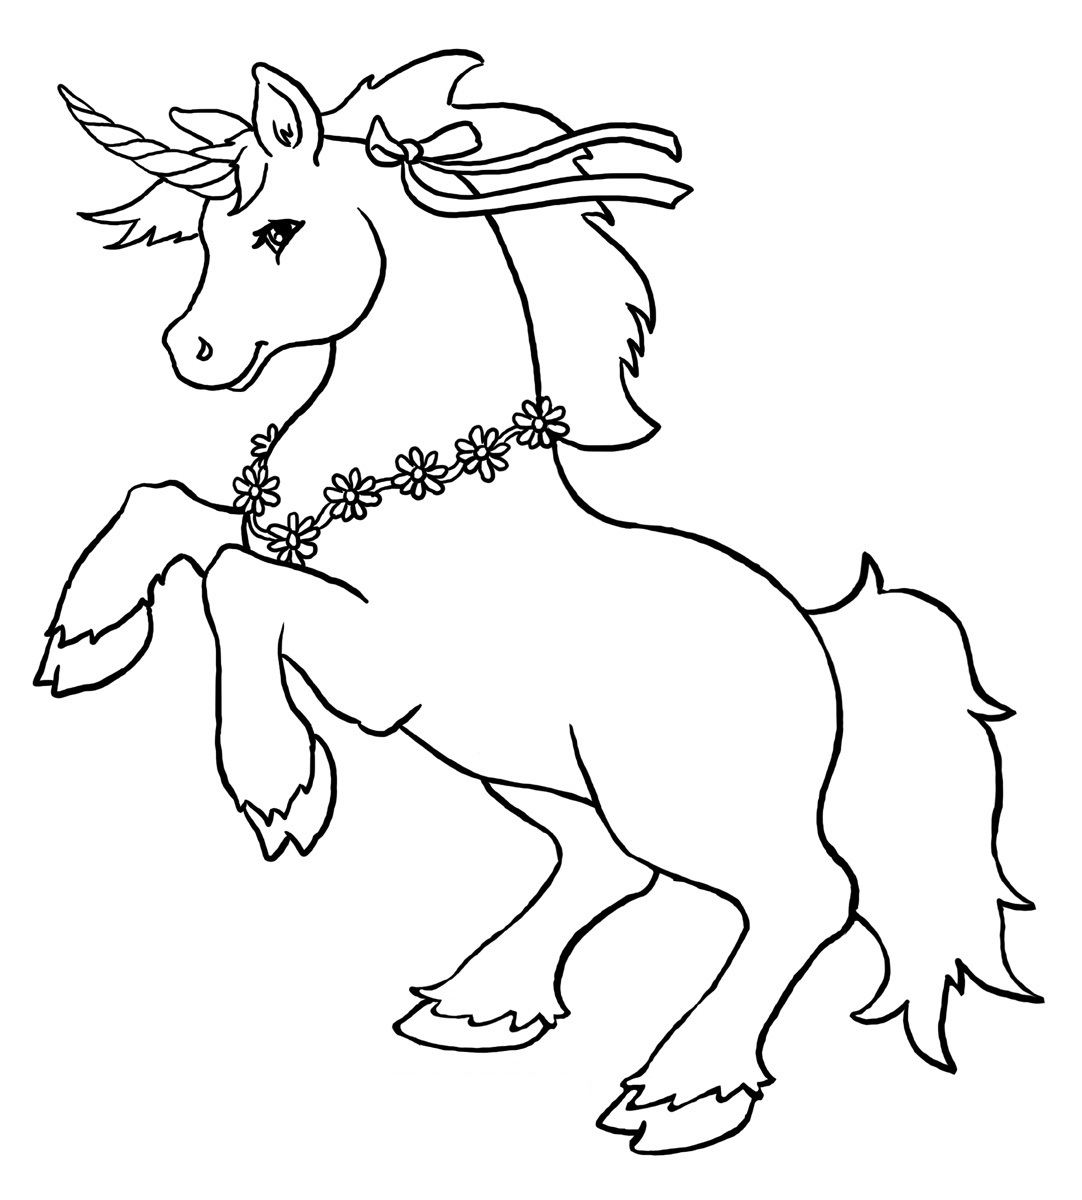 childrens coloring pages unicorn - photo#9